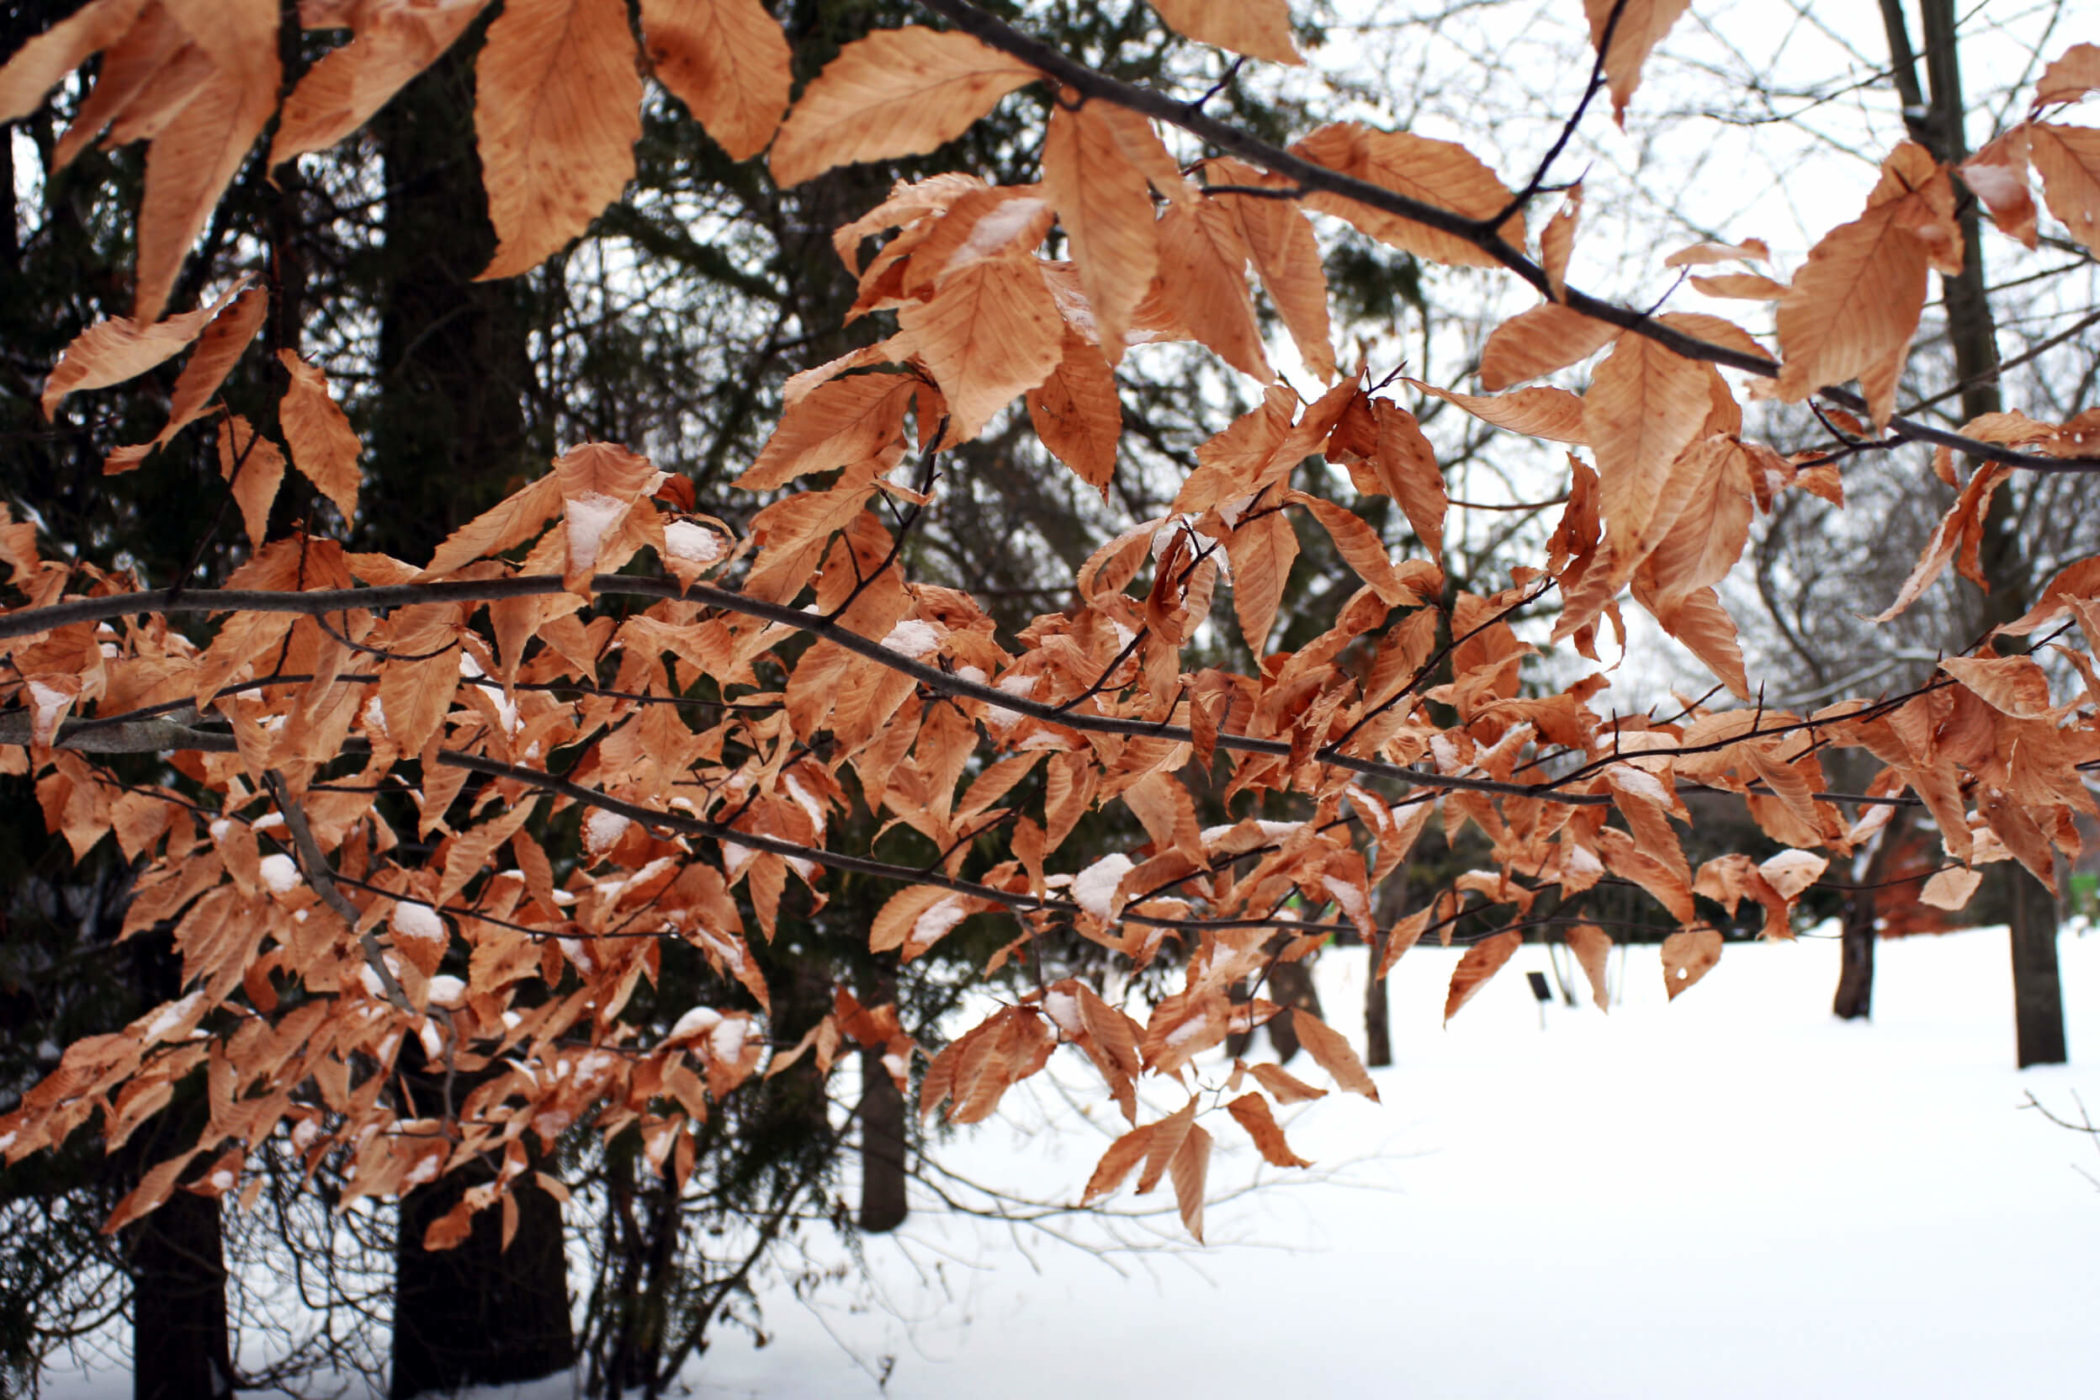 Beech and ironwood trees keep their leaves through the winter, adding visual and auditory textures to your garden during what can otherwise be bare and silent time of year. Photo: Beech Tree at GreenUP Ecology Park.